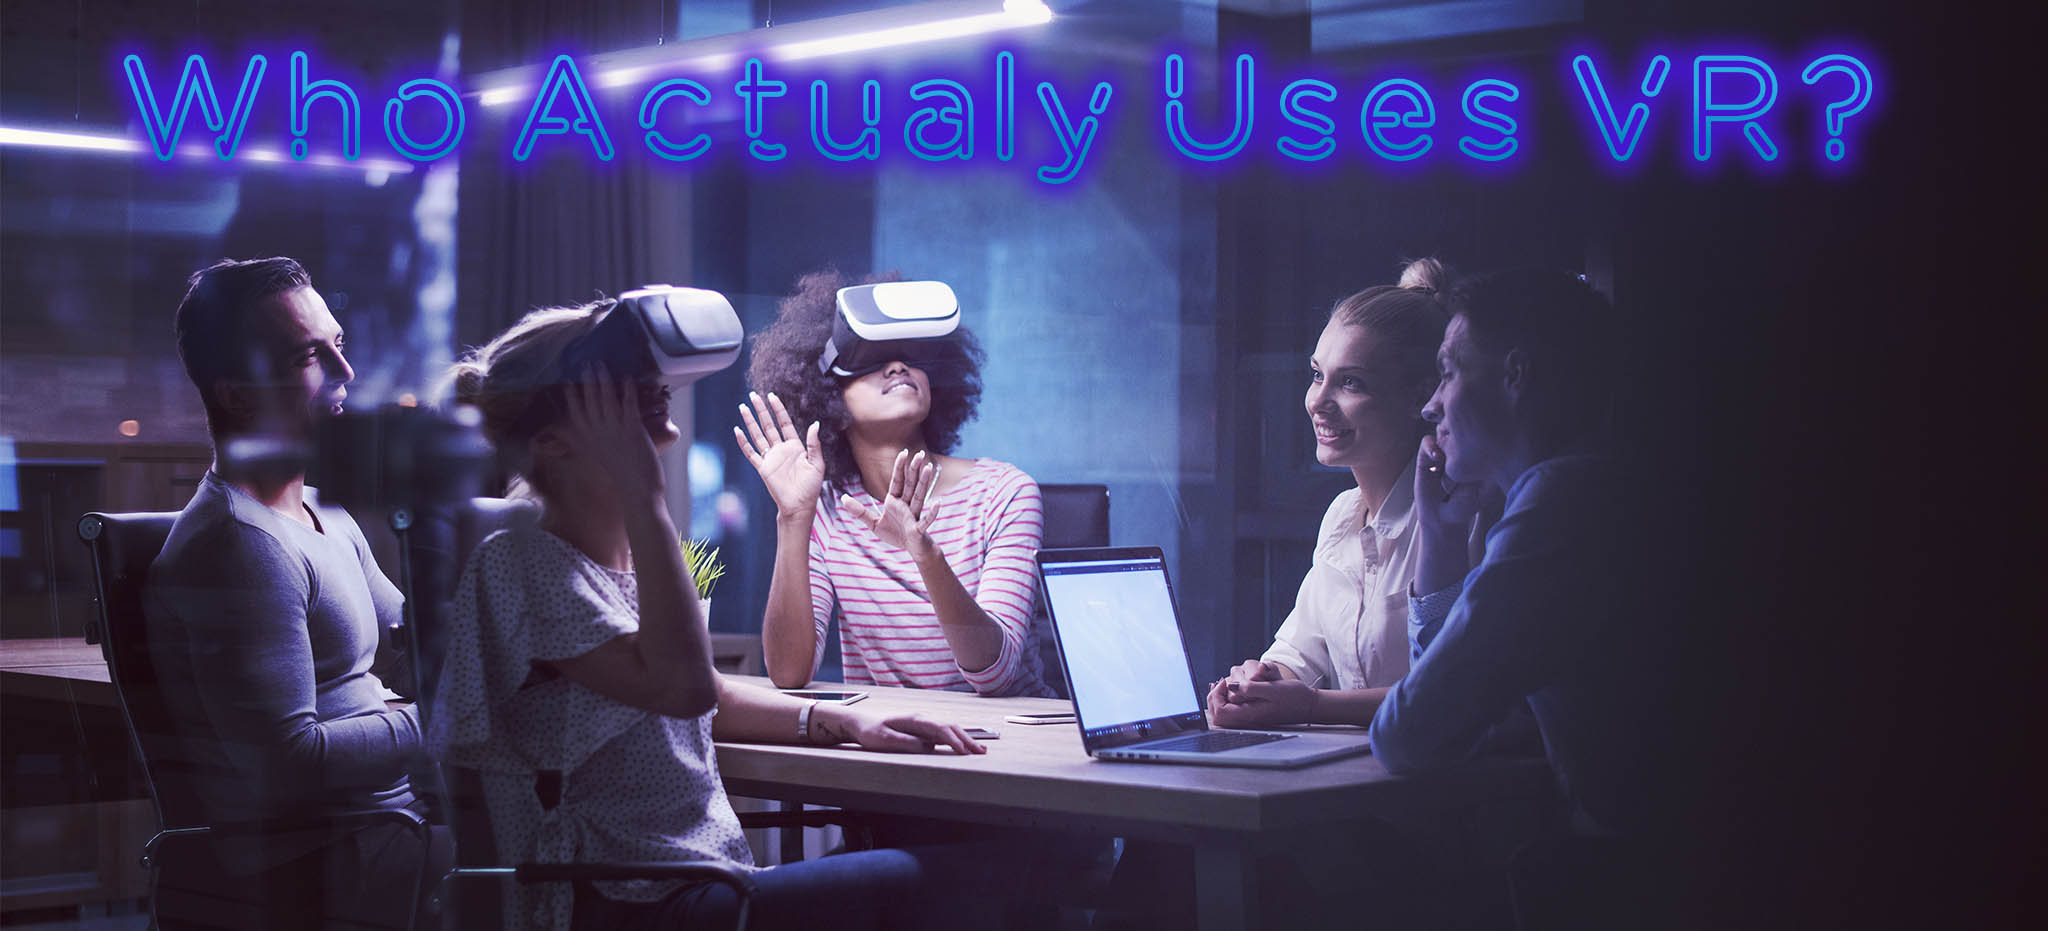 Who Actually Uses VR?